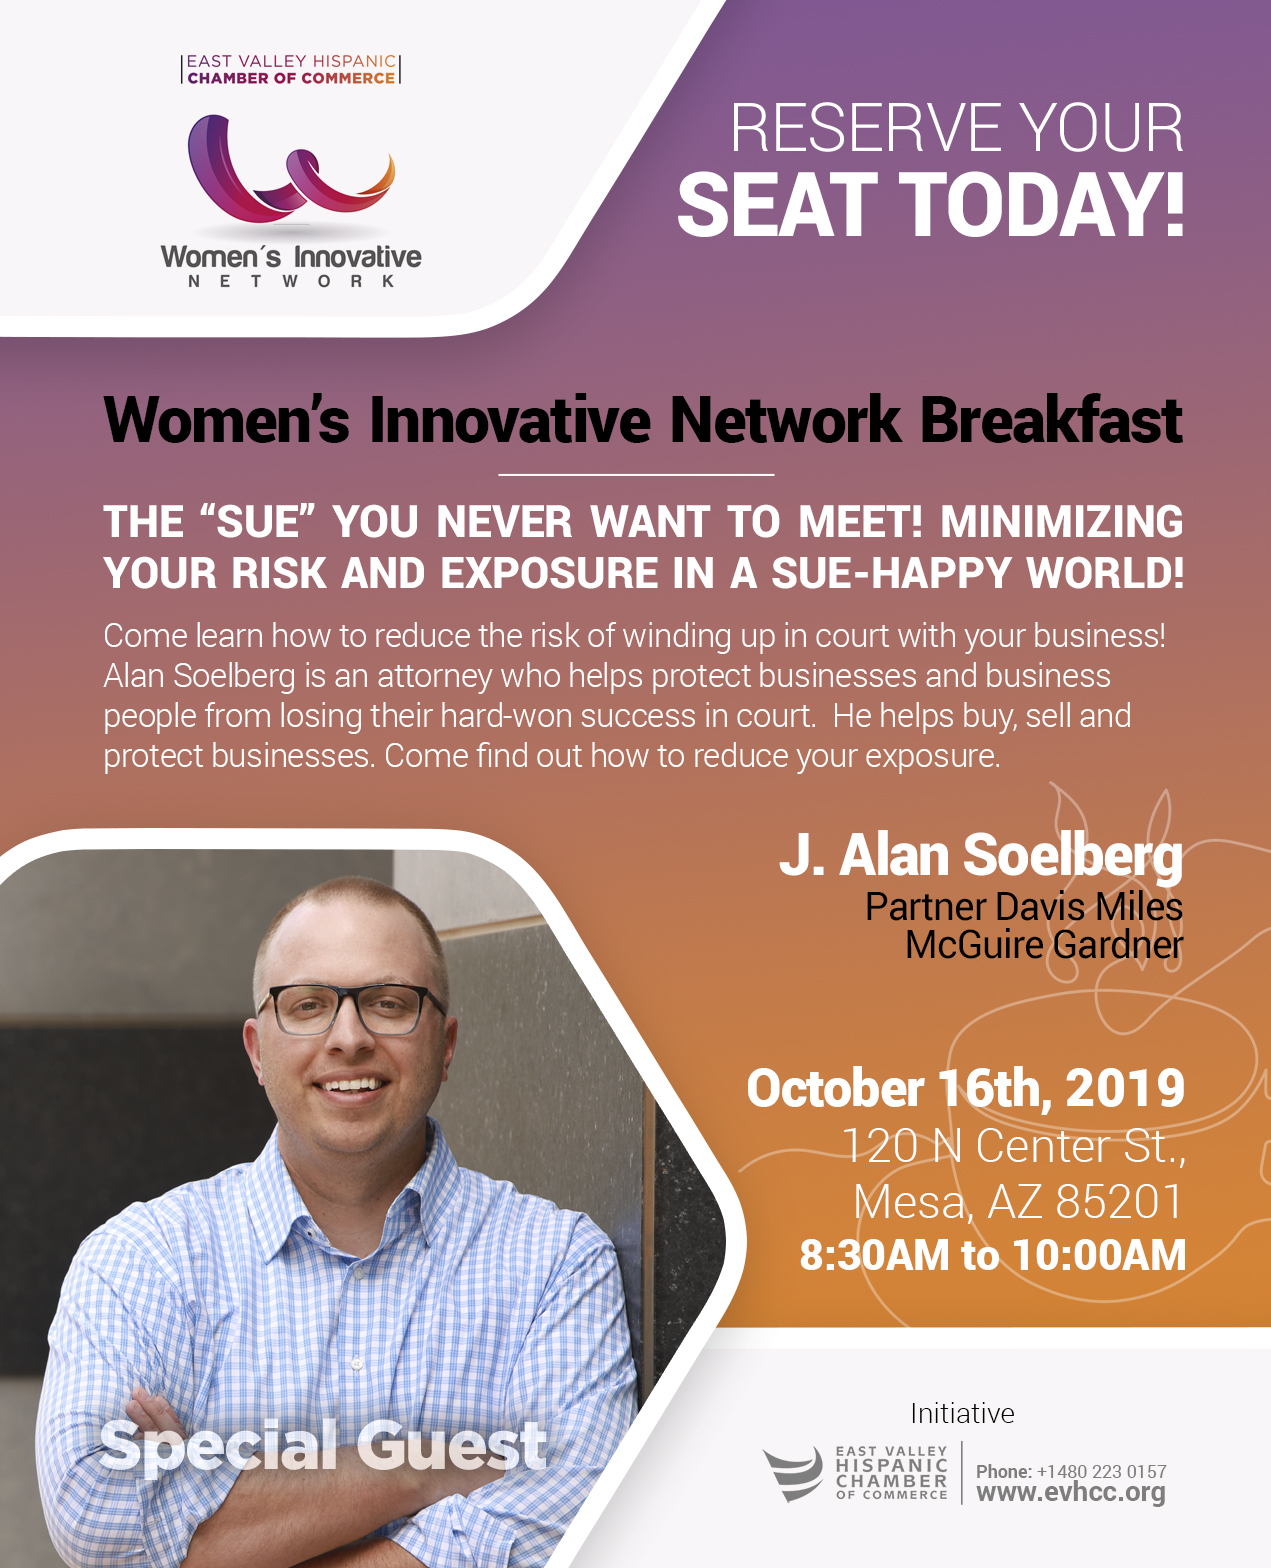 Womens Innovative Network by the East Valley Hispanic Chamber of Commerce